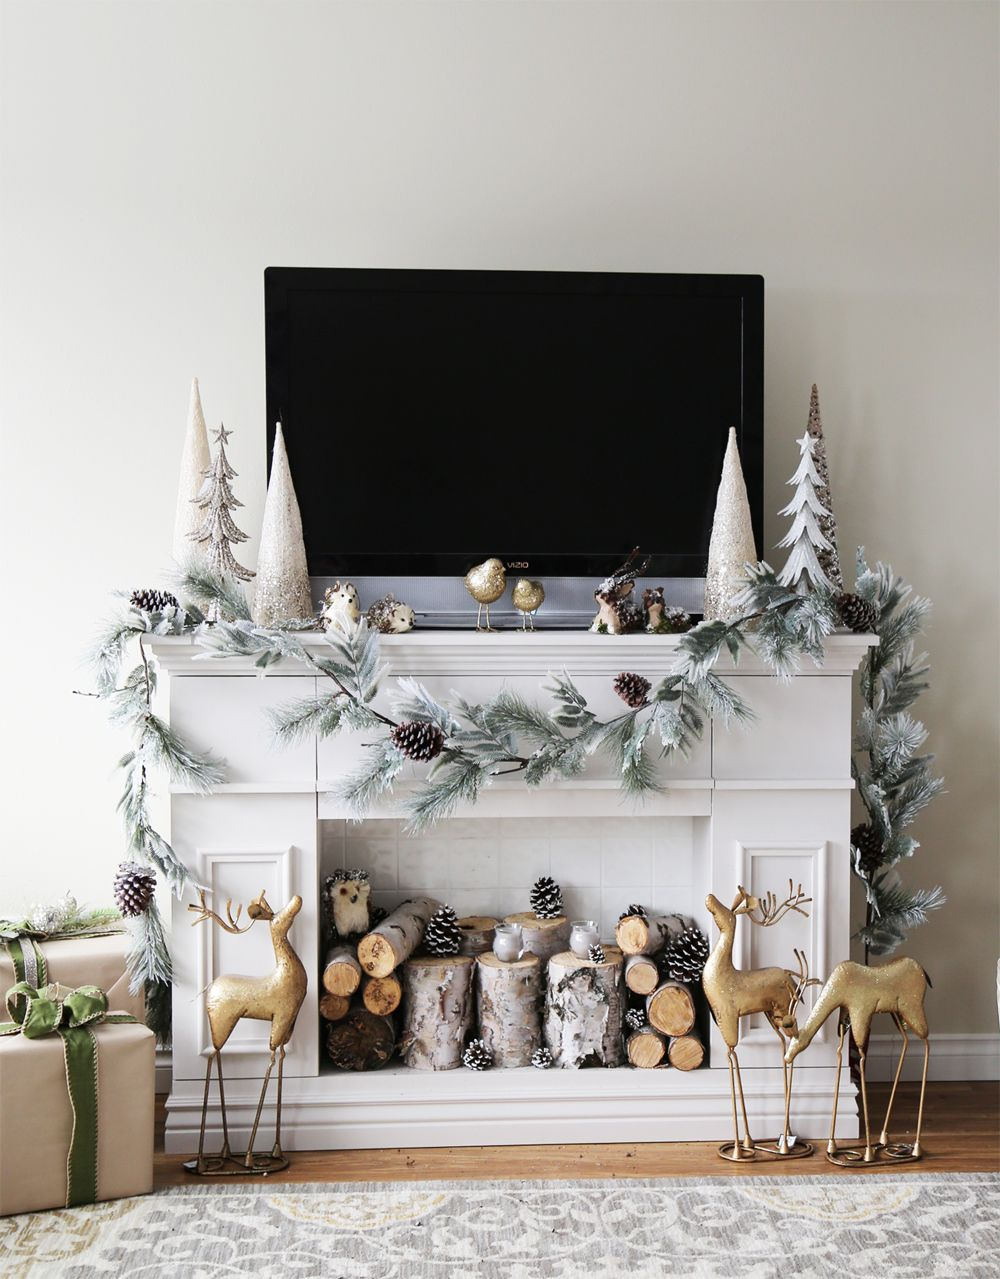 christmas is around the corner and its time to deck the halls and decorate our mantels